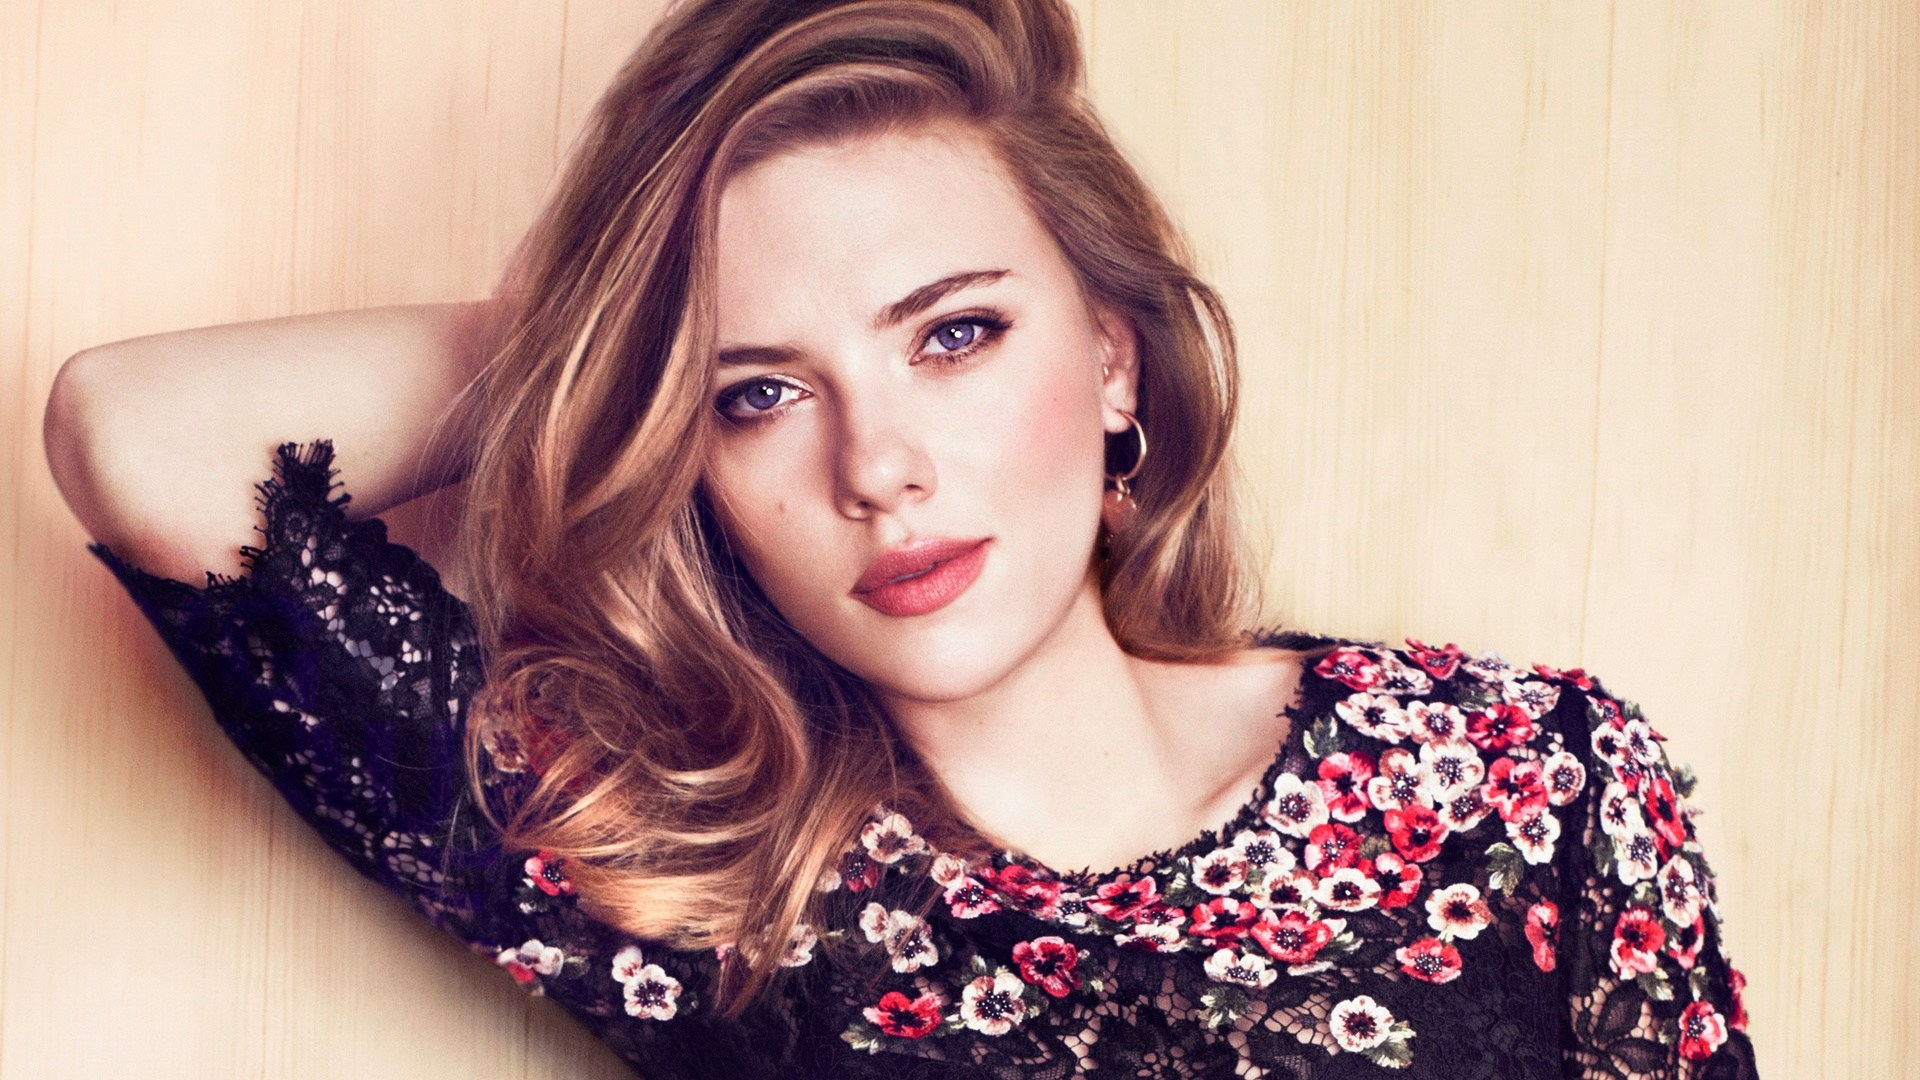 most beautiful woman in the world 2017